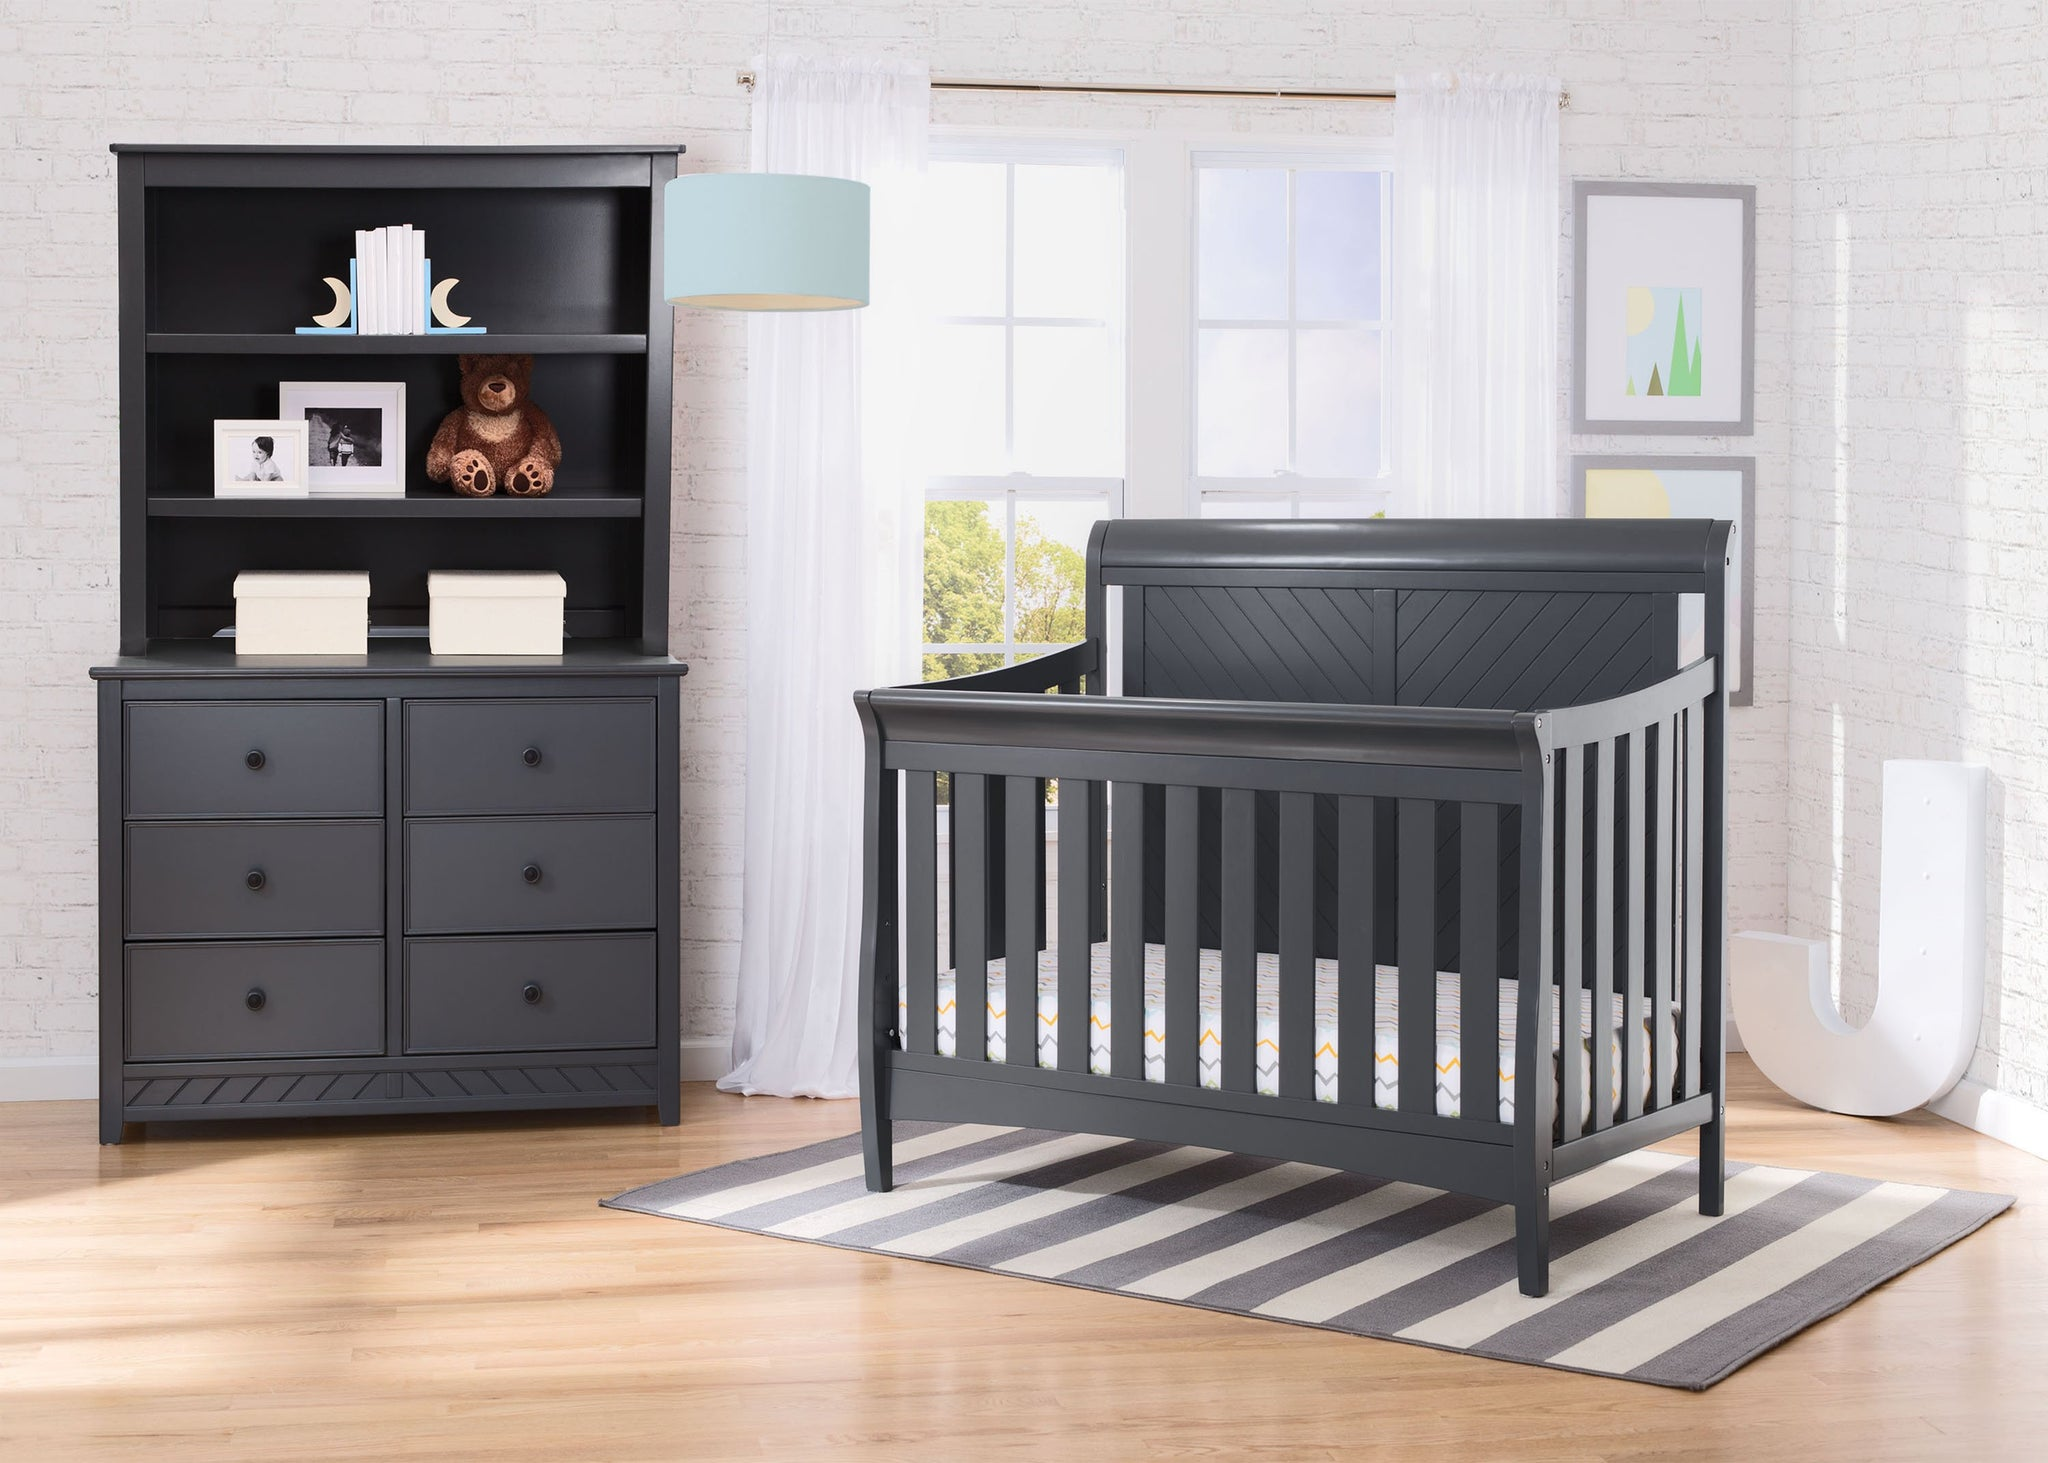 Delta Children Charcoal Grey (029) Bennington Elite Sleigh 4-in-1 Convertible Crib (550650), Room, a1a